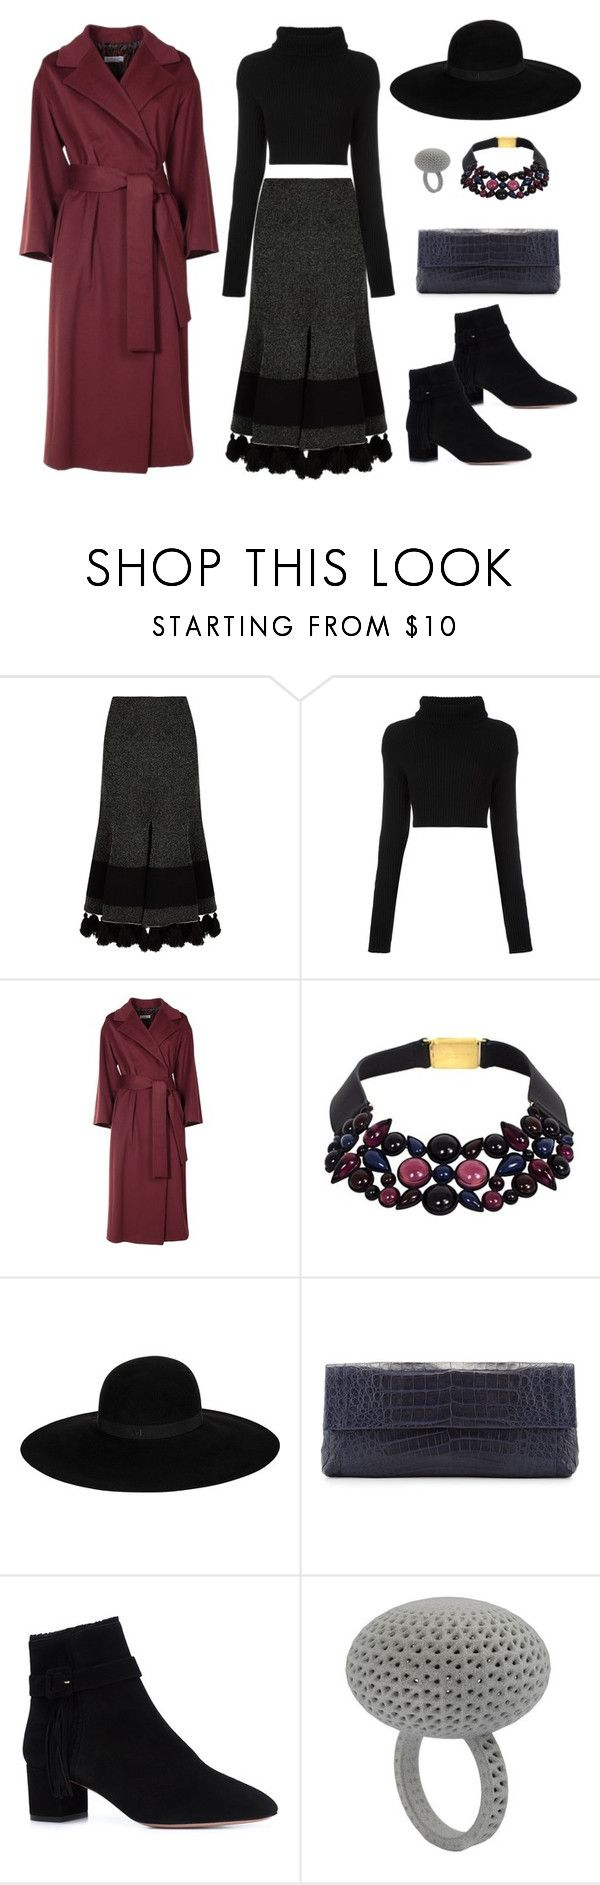 """""""Untitled #92"""" by rookiestyle ❤ liked on Polyvore featuring Proenza Schouler, Valentino, Alberto Biani, Louis Vuitton, Maison Michel, Nancy Gonzalez and Aquazzura"""